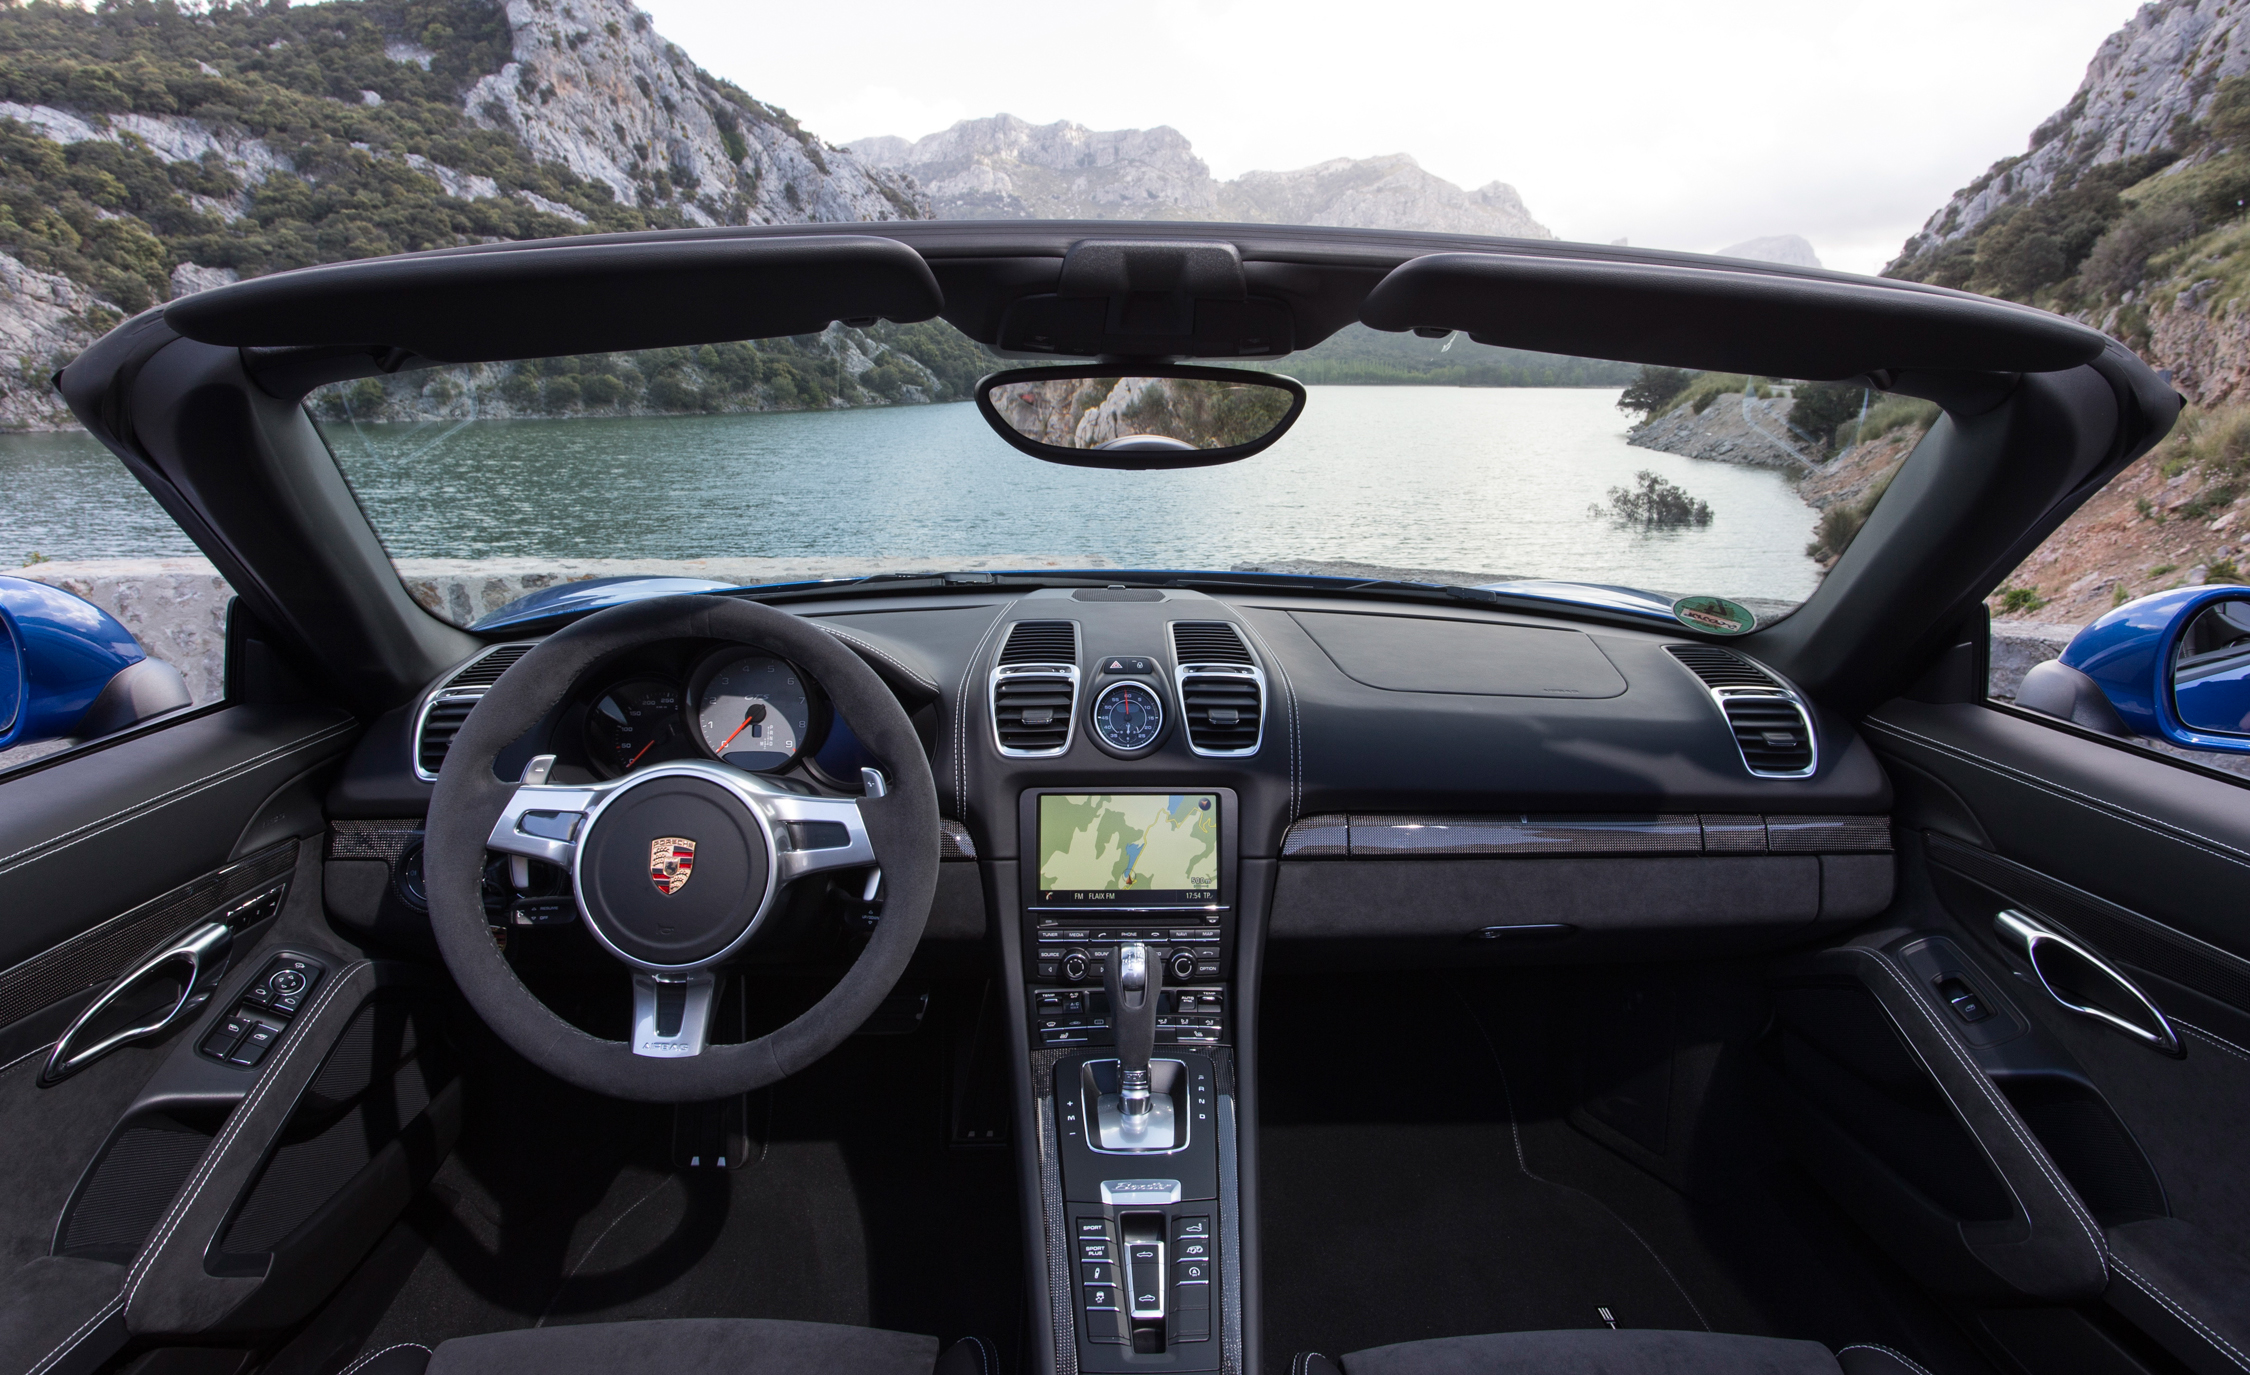 2015 Porsche Boxster GTS Interior (Photo 22 of 24)